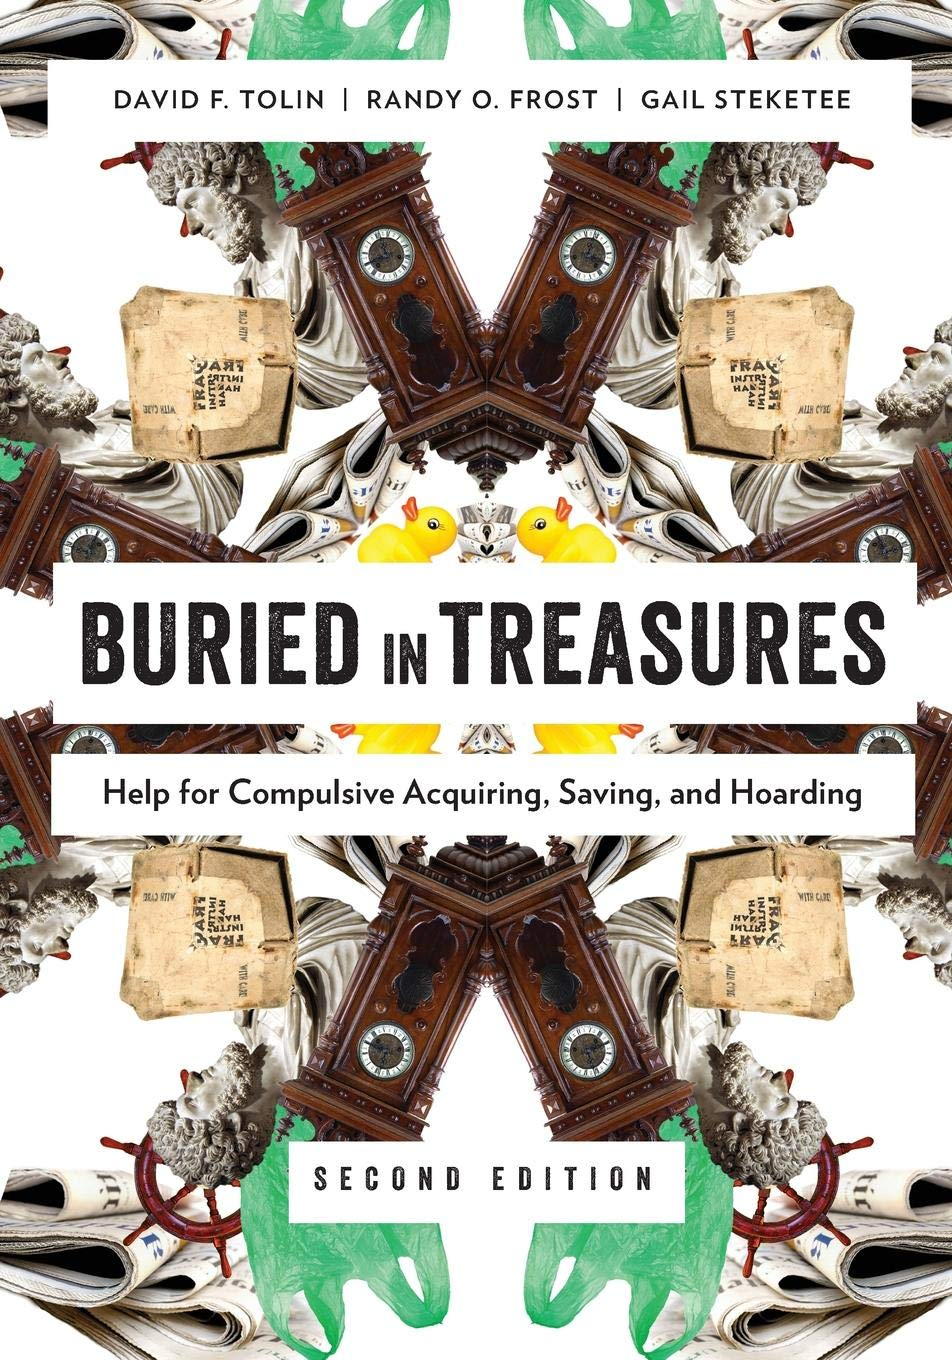 Help for Compulsive Acquiring and Hoarding Saving Buried in Treasures